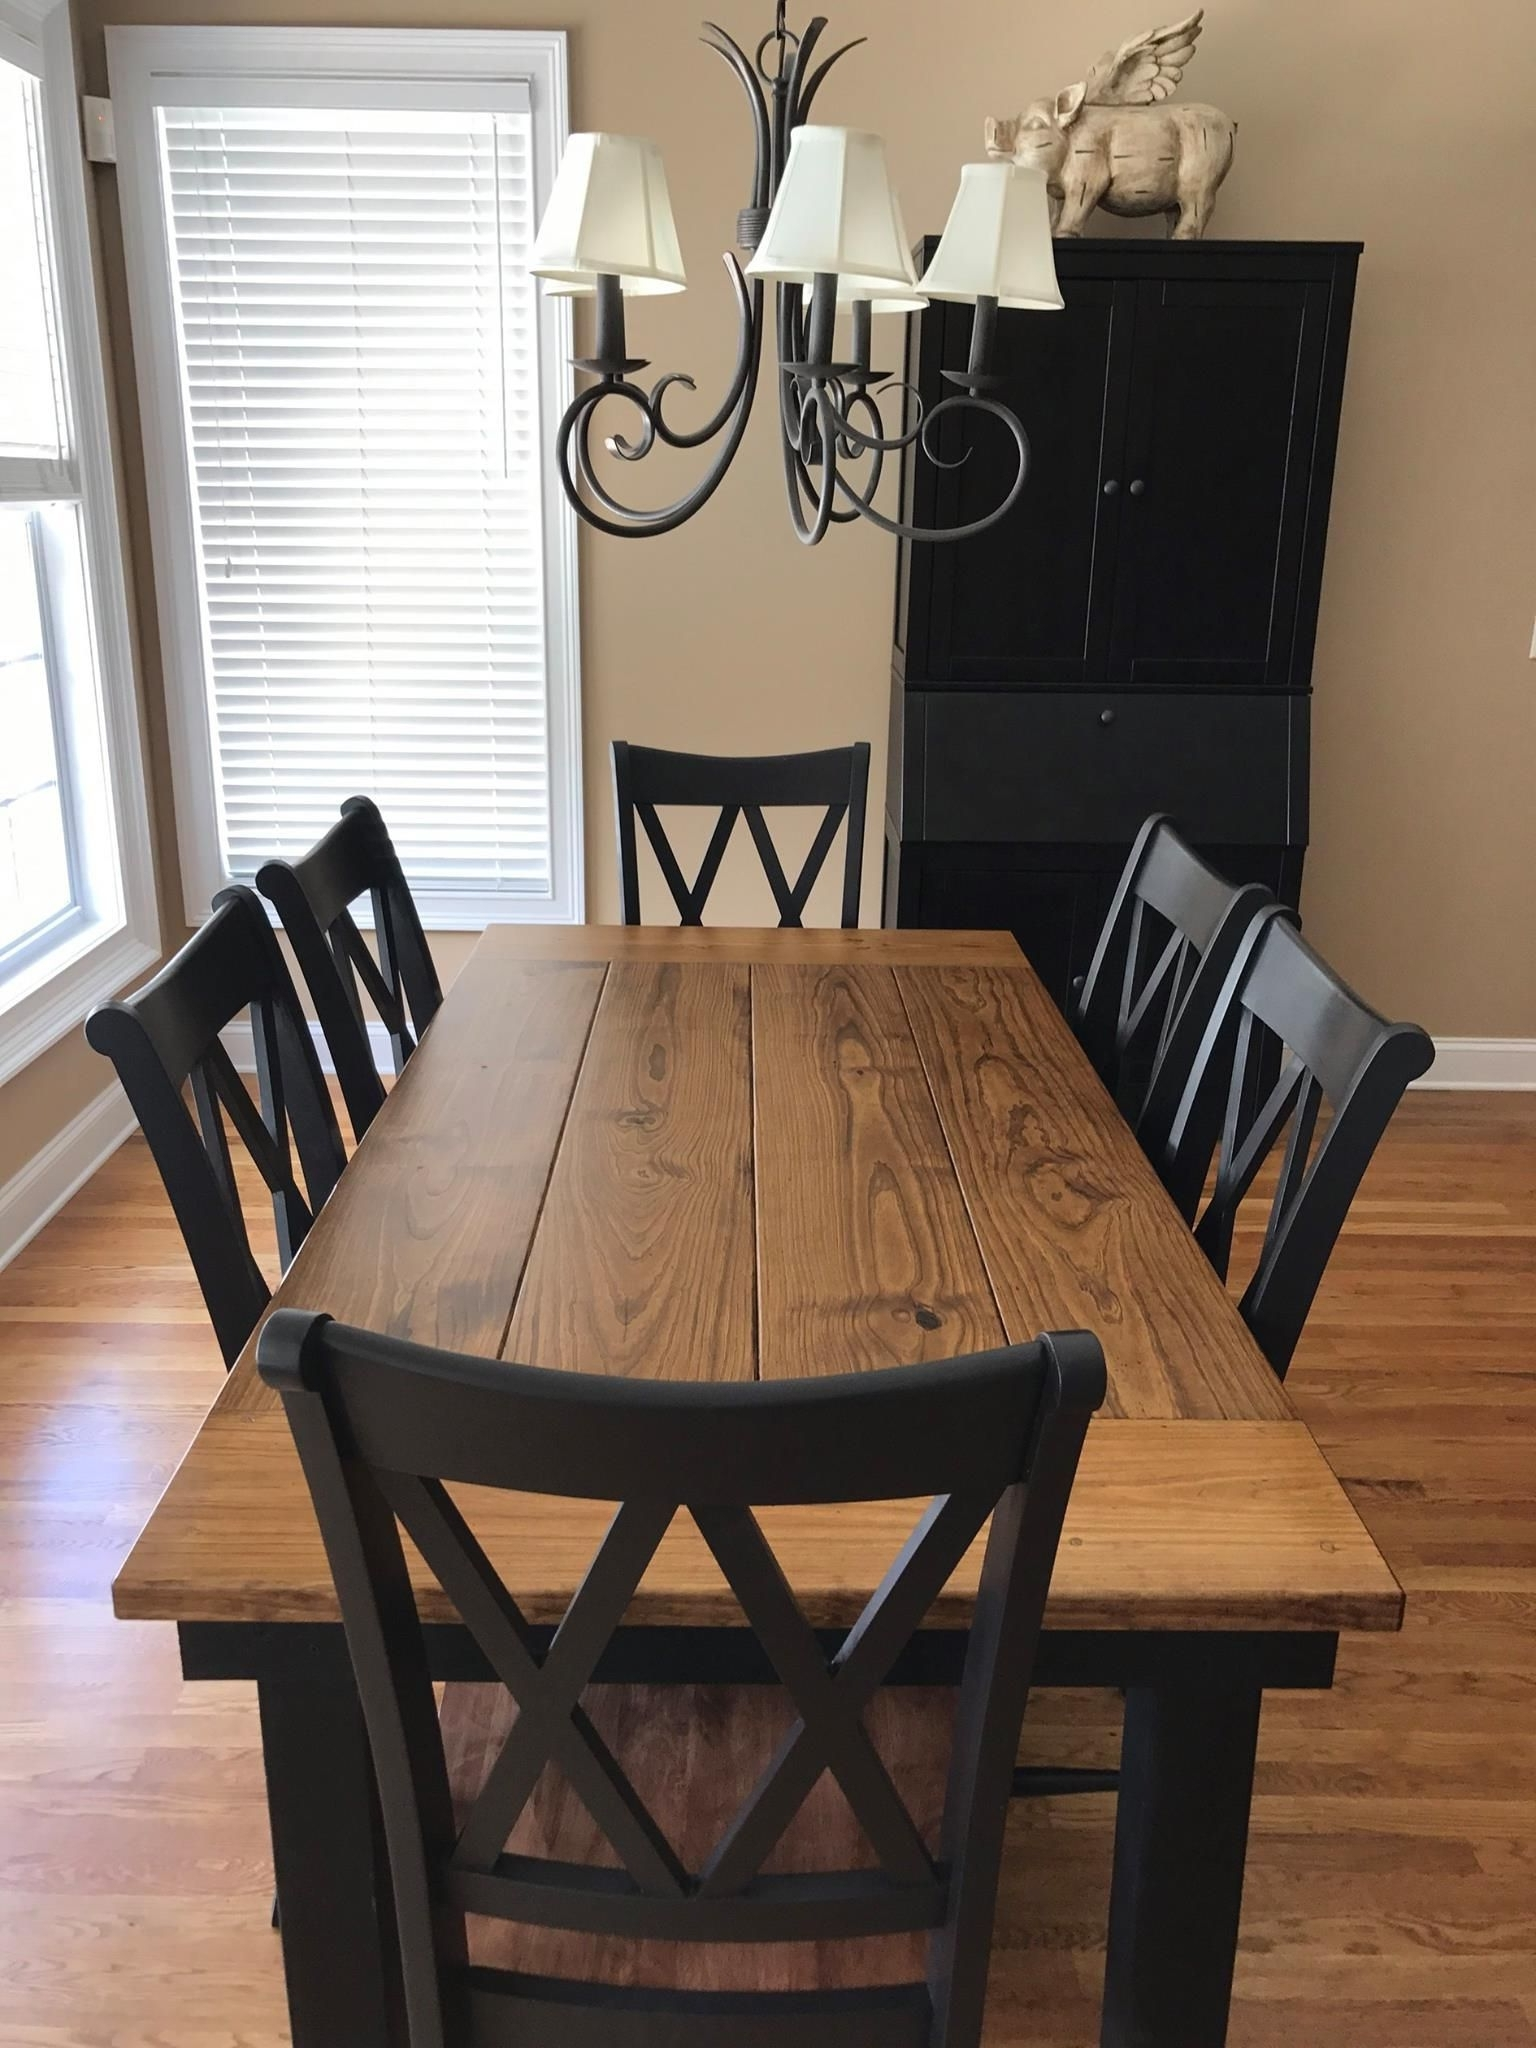 Dining Room Intended For Preferred Washed Old Oak & Waxed Black Legs Bar Tables (View 3 of 25)